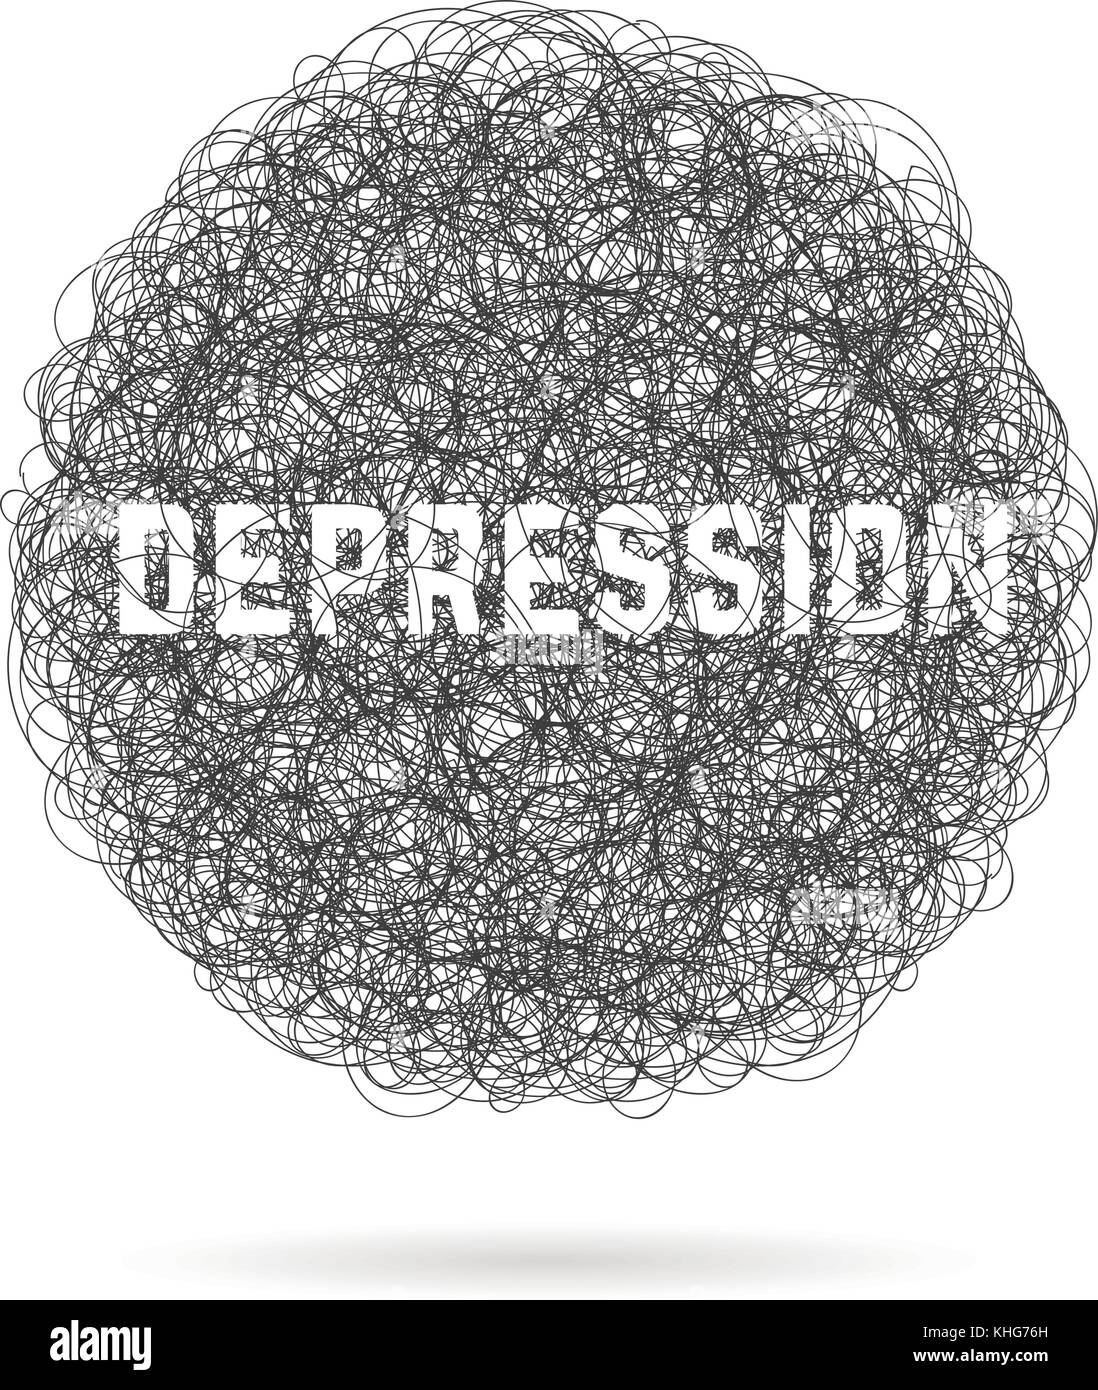 depression with hand drawn cloud and shadow - Stock Image